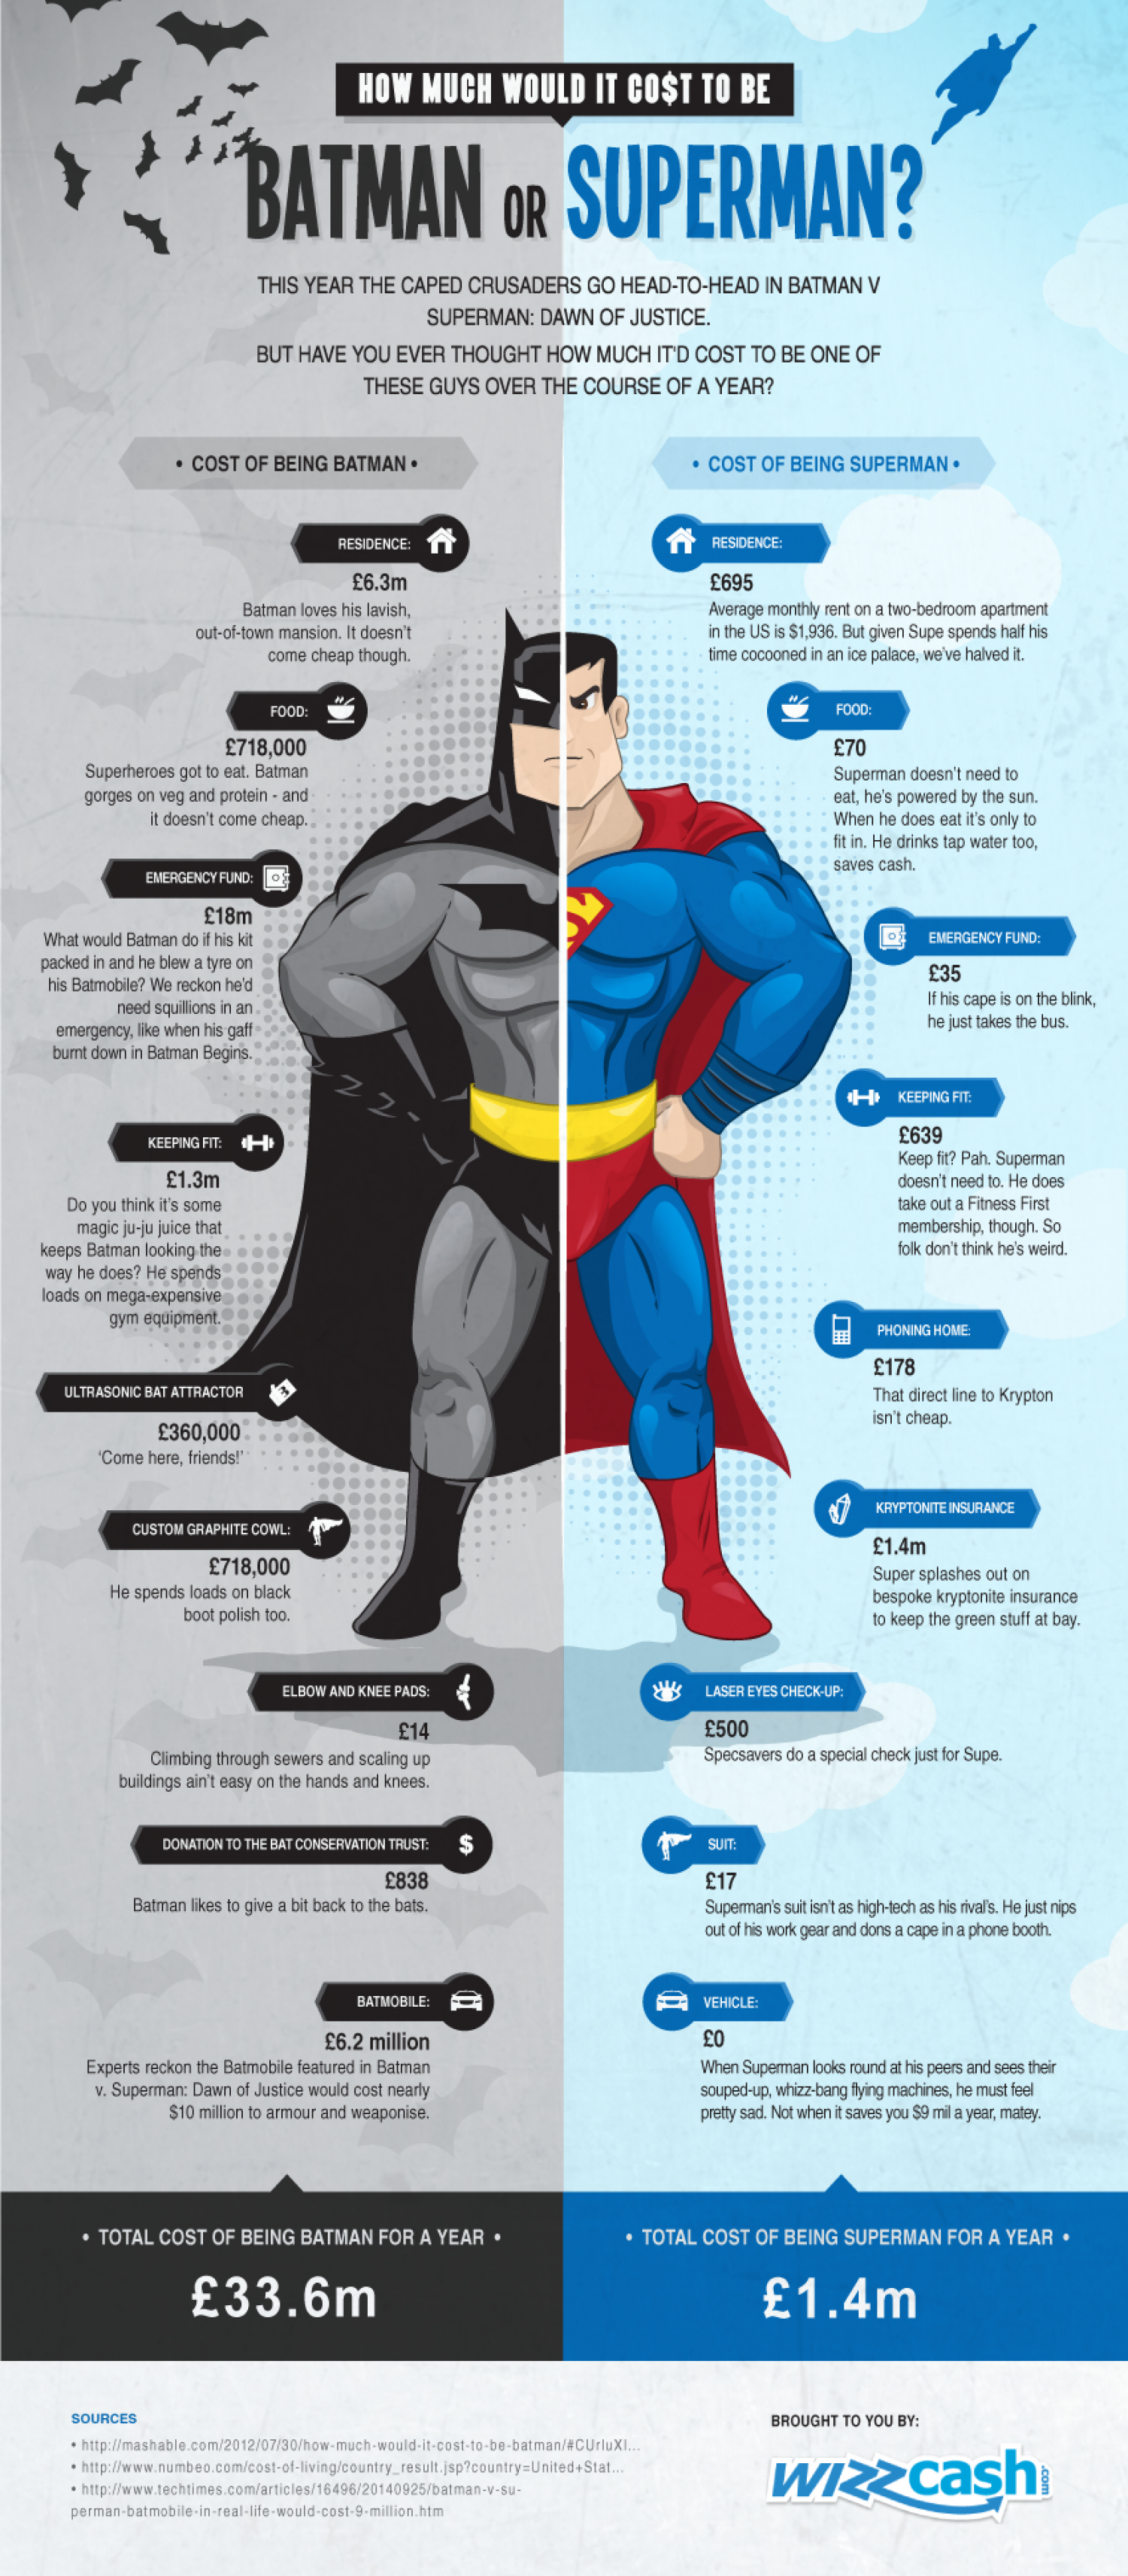 How Much Would It Cost To Be Batman or Superman? Infographic